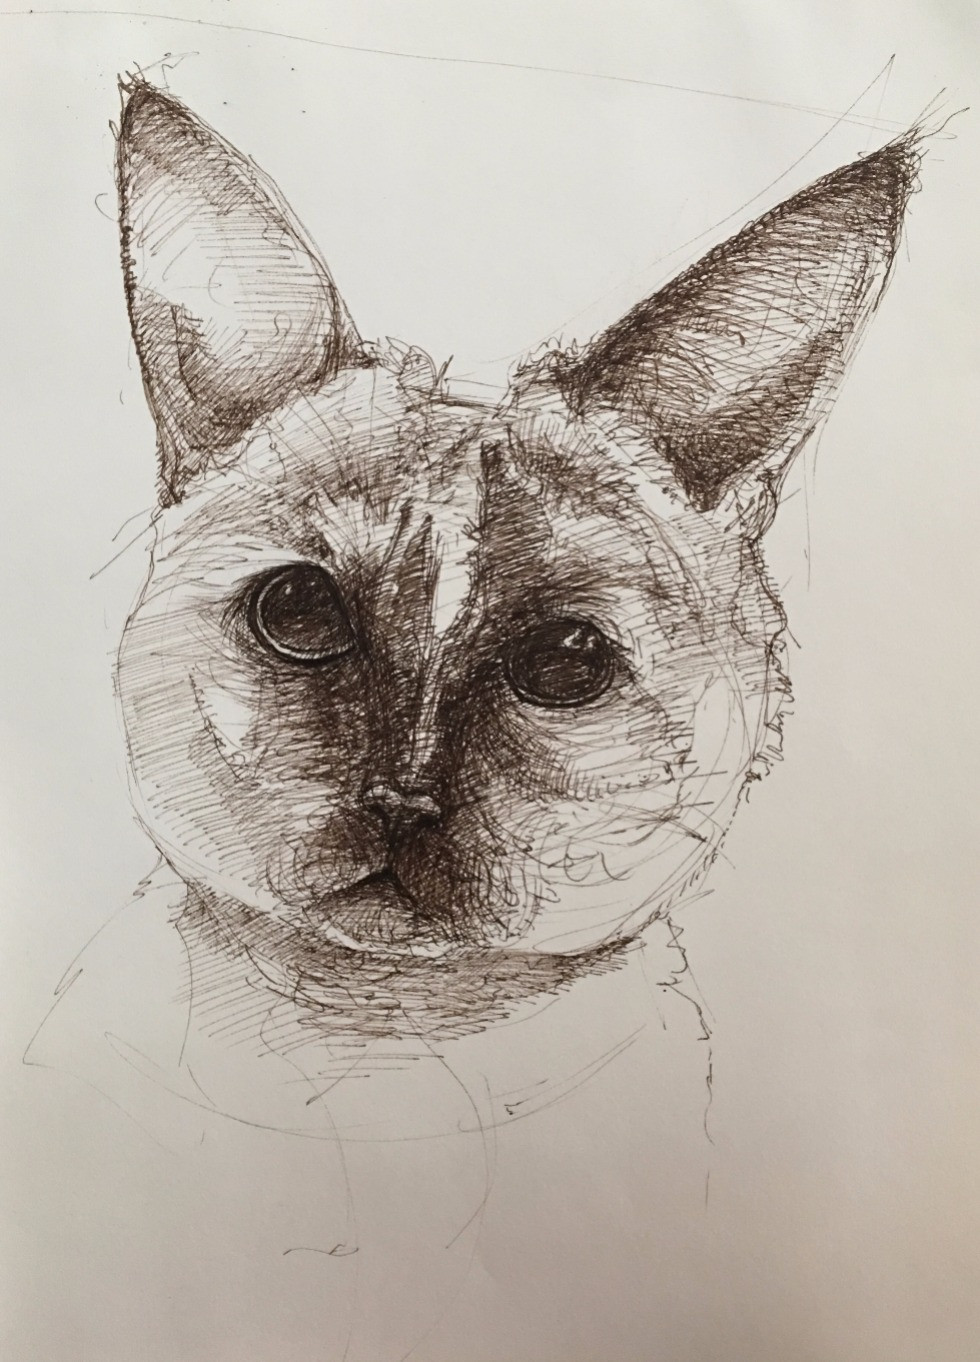 pen drawing of cat head looking at the viewer.